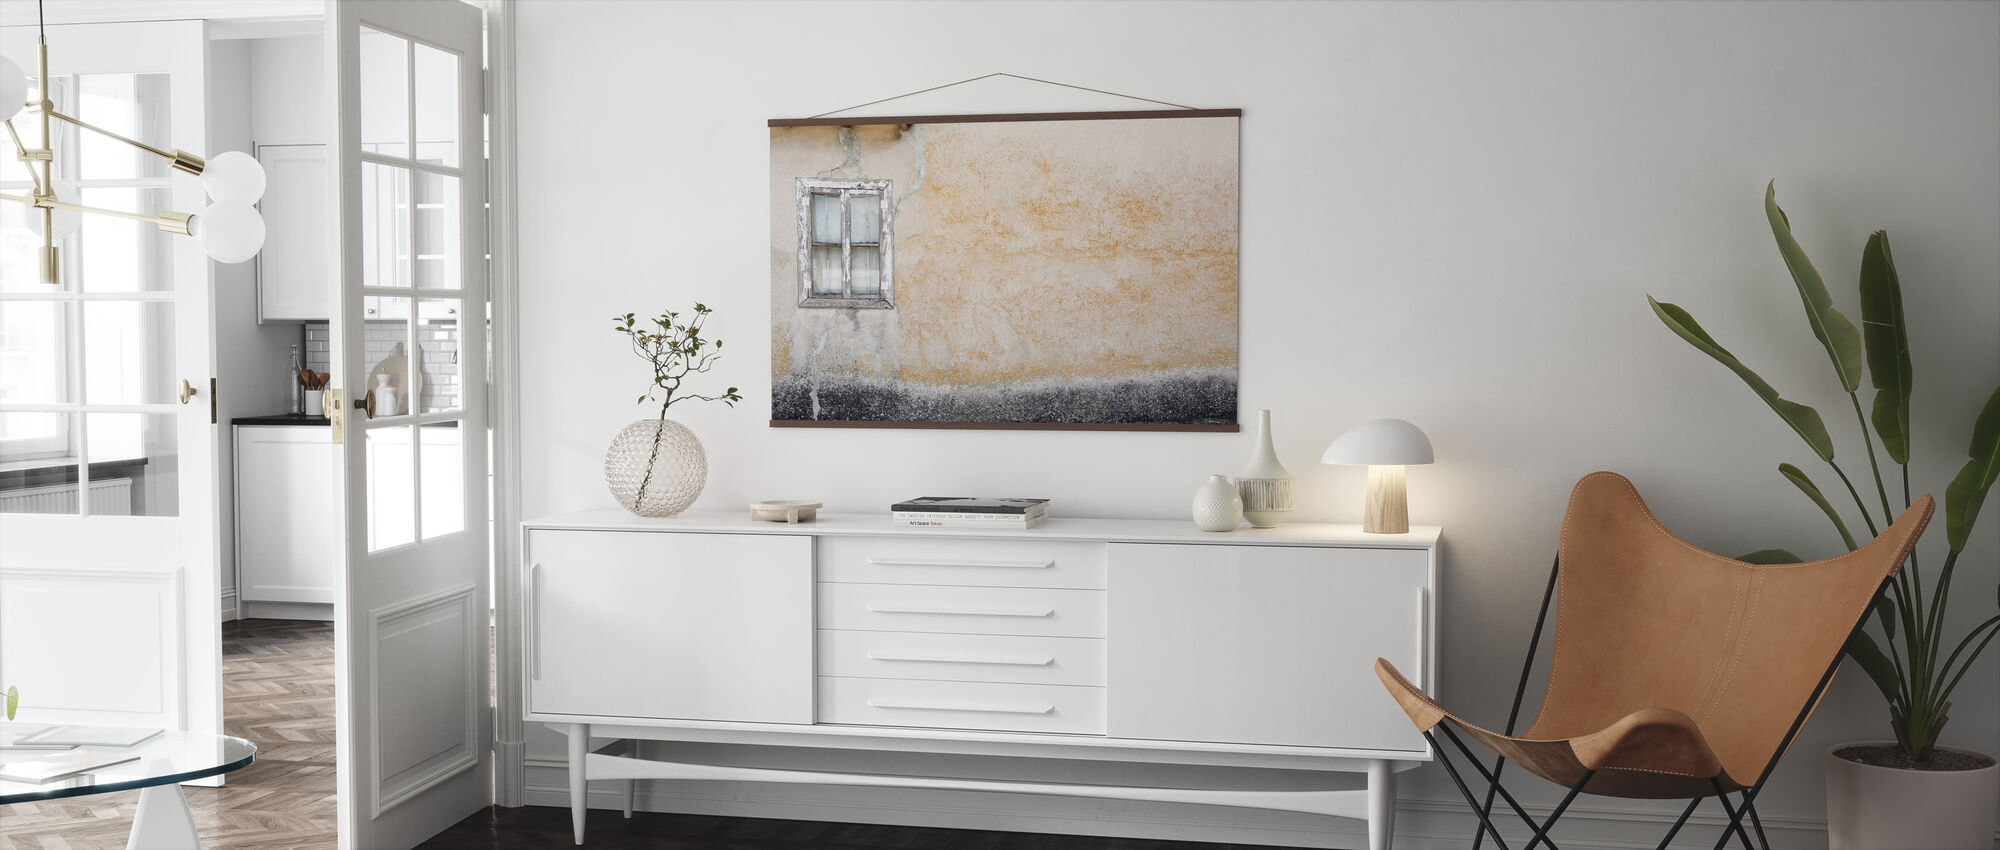 Old Wall with Wooden Window - Poster - Living Room